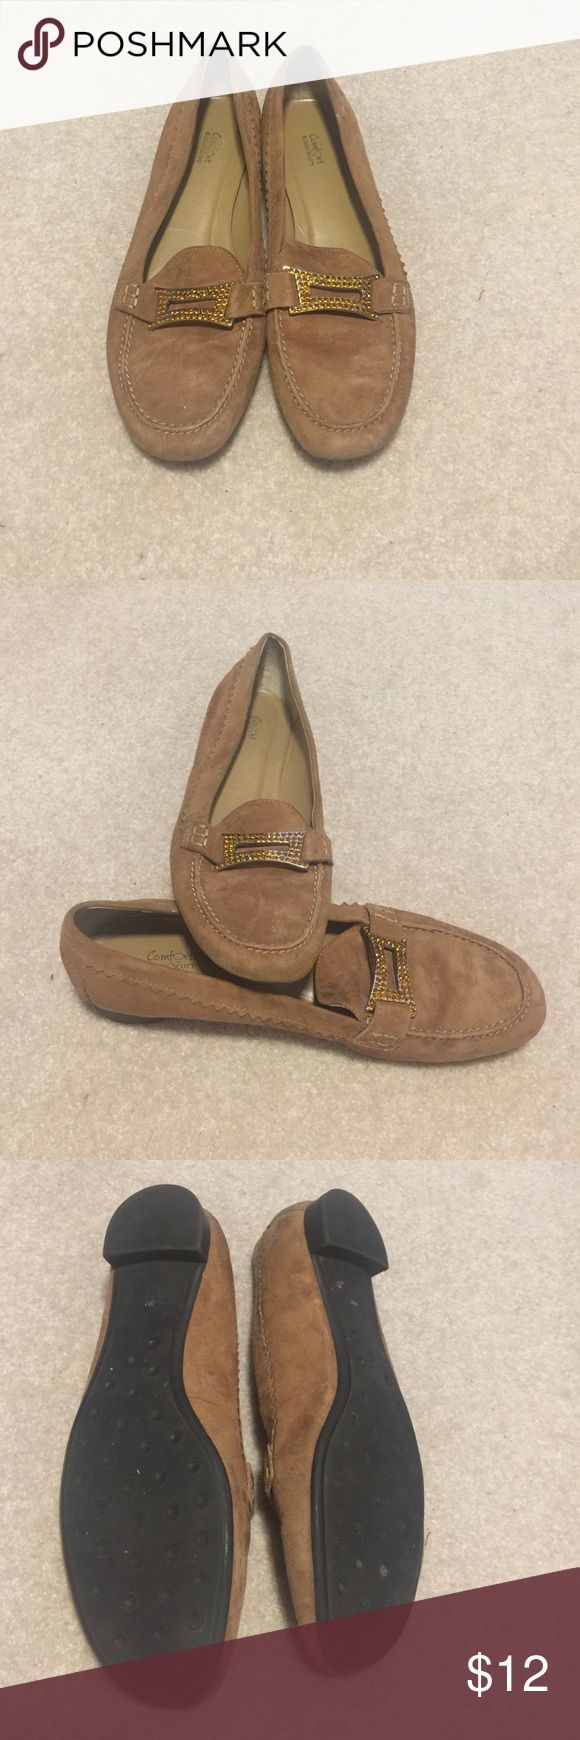 Tan loafers Tan loafers with orange buckle. In great condition! Karen Scott Shoes Flats & Loafers